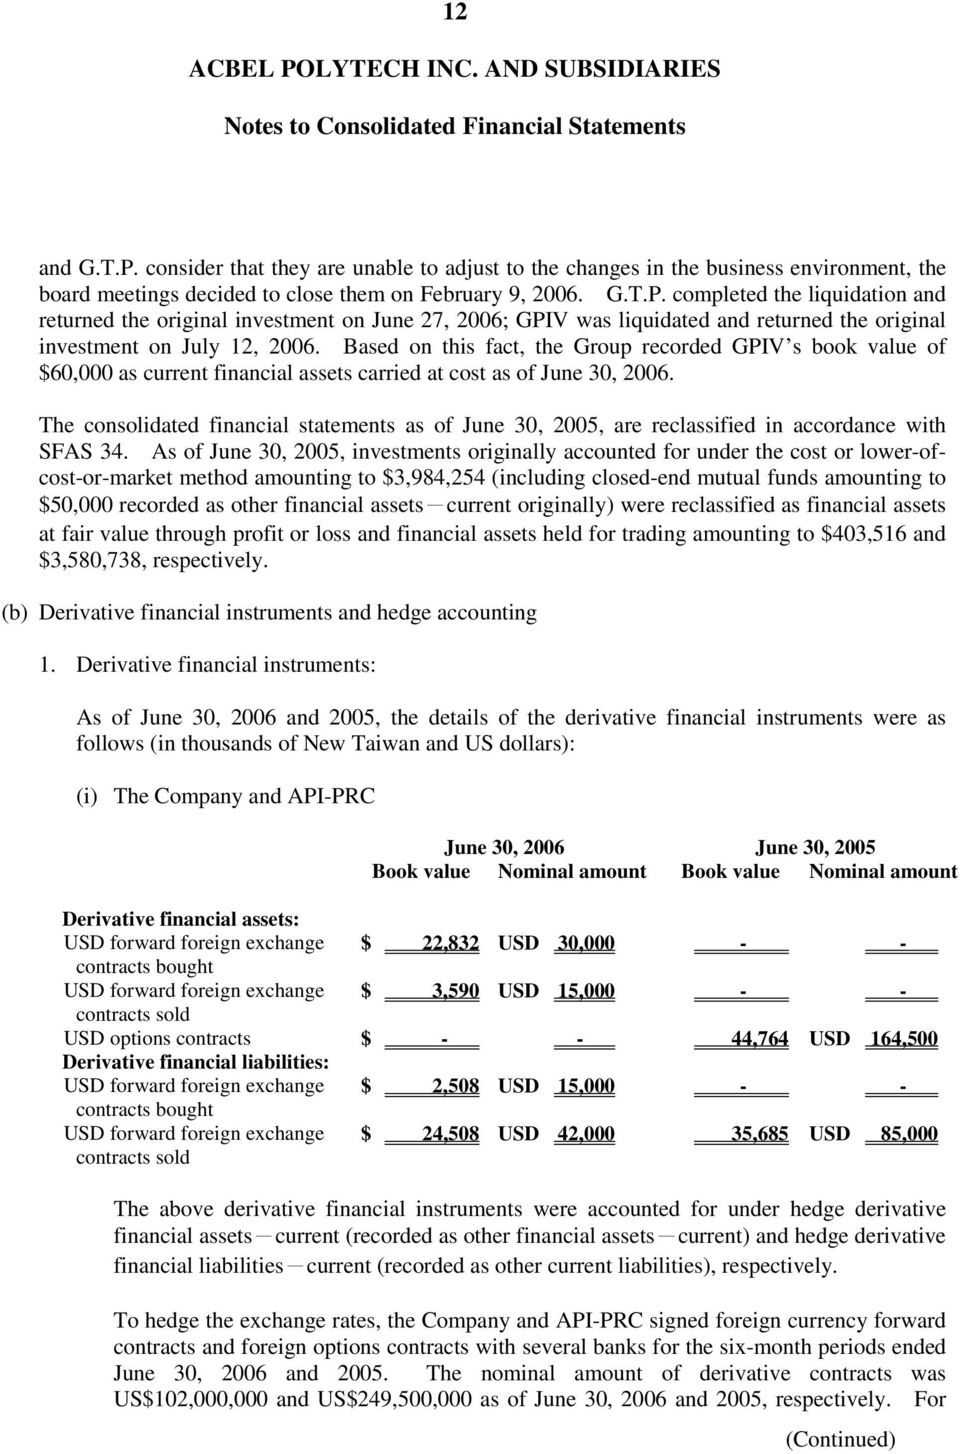 The consolidated financial statements as of June 30, 2005, are reclassified in accordance with SFAS 34.